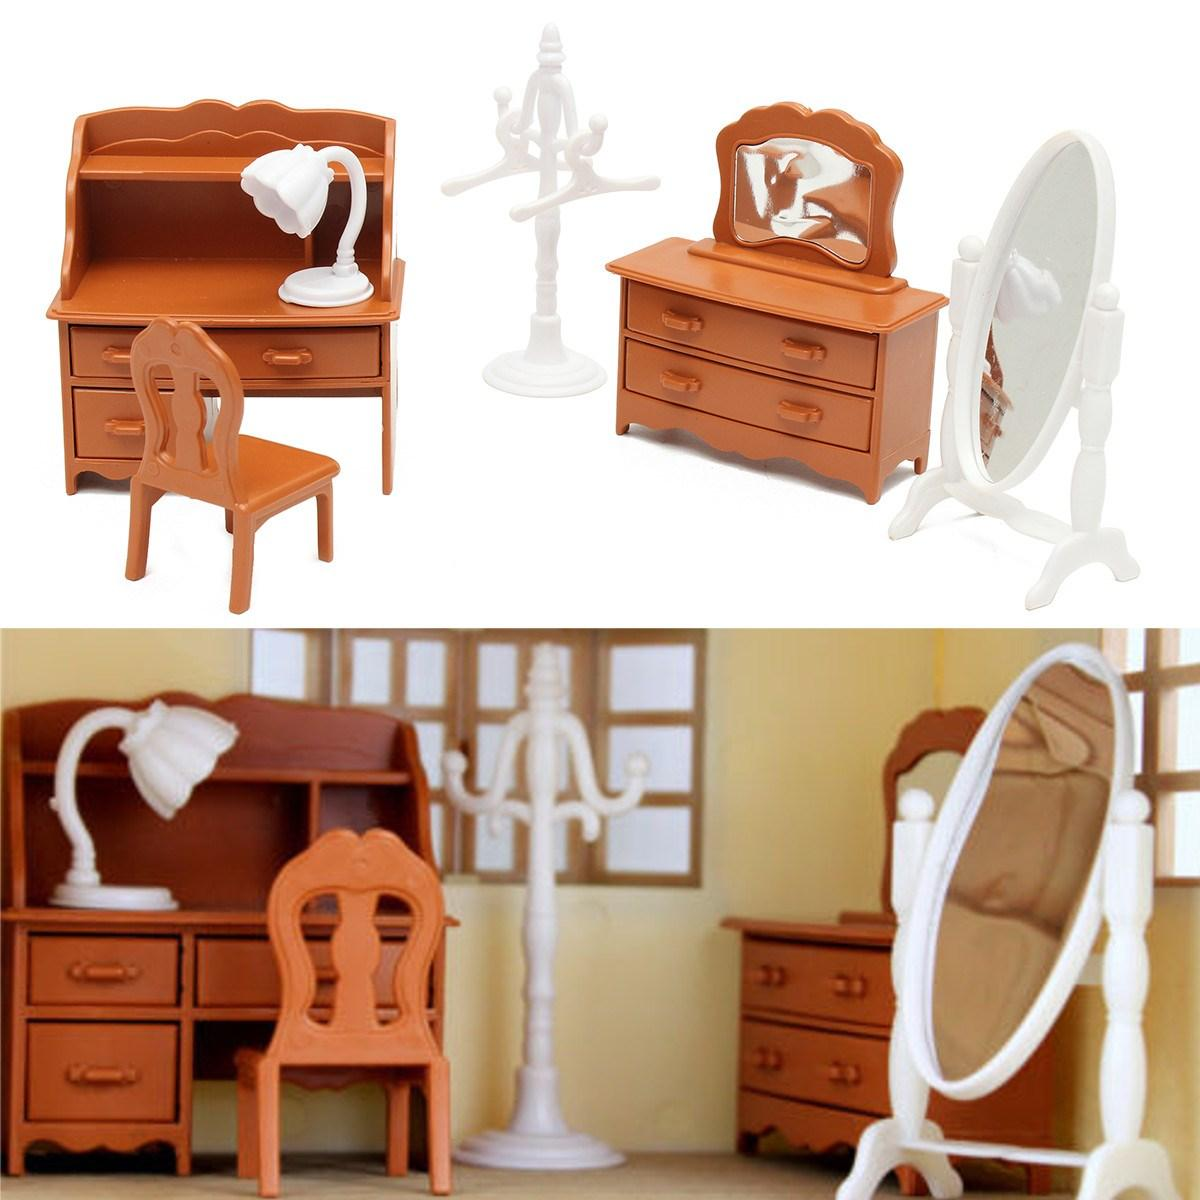 doll house furniture sets. Wholesale Miniature Living Room Dressing Table Furniture Sets For Mini Children Dollhouse Home Decor Kids Toy Doll House Toys Gift Dolls B